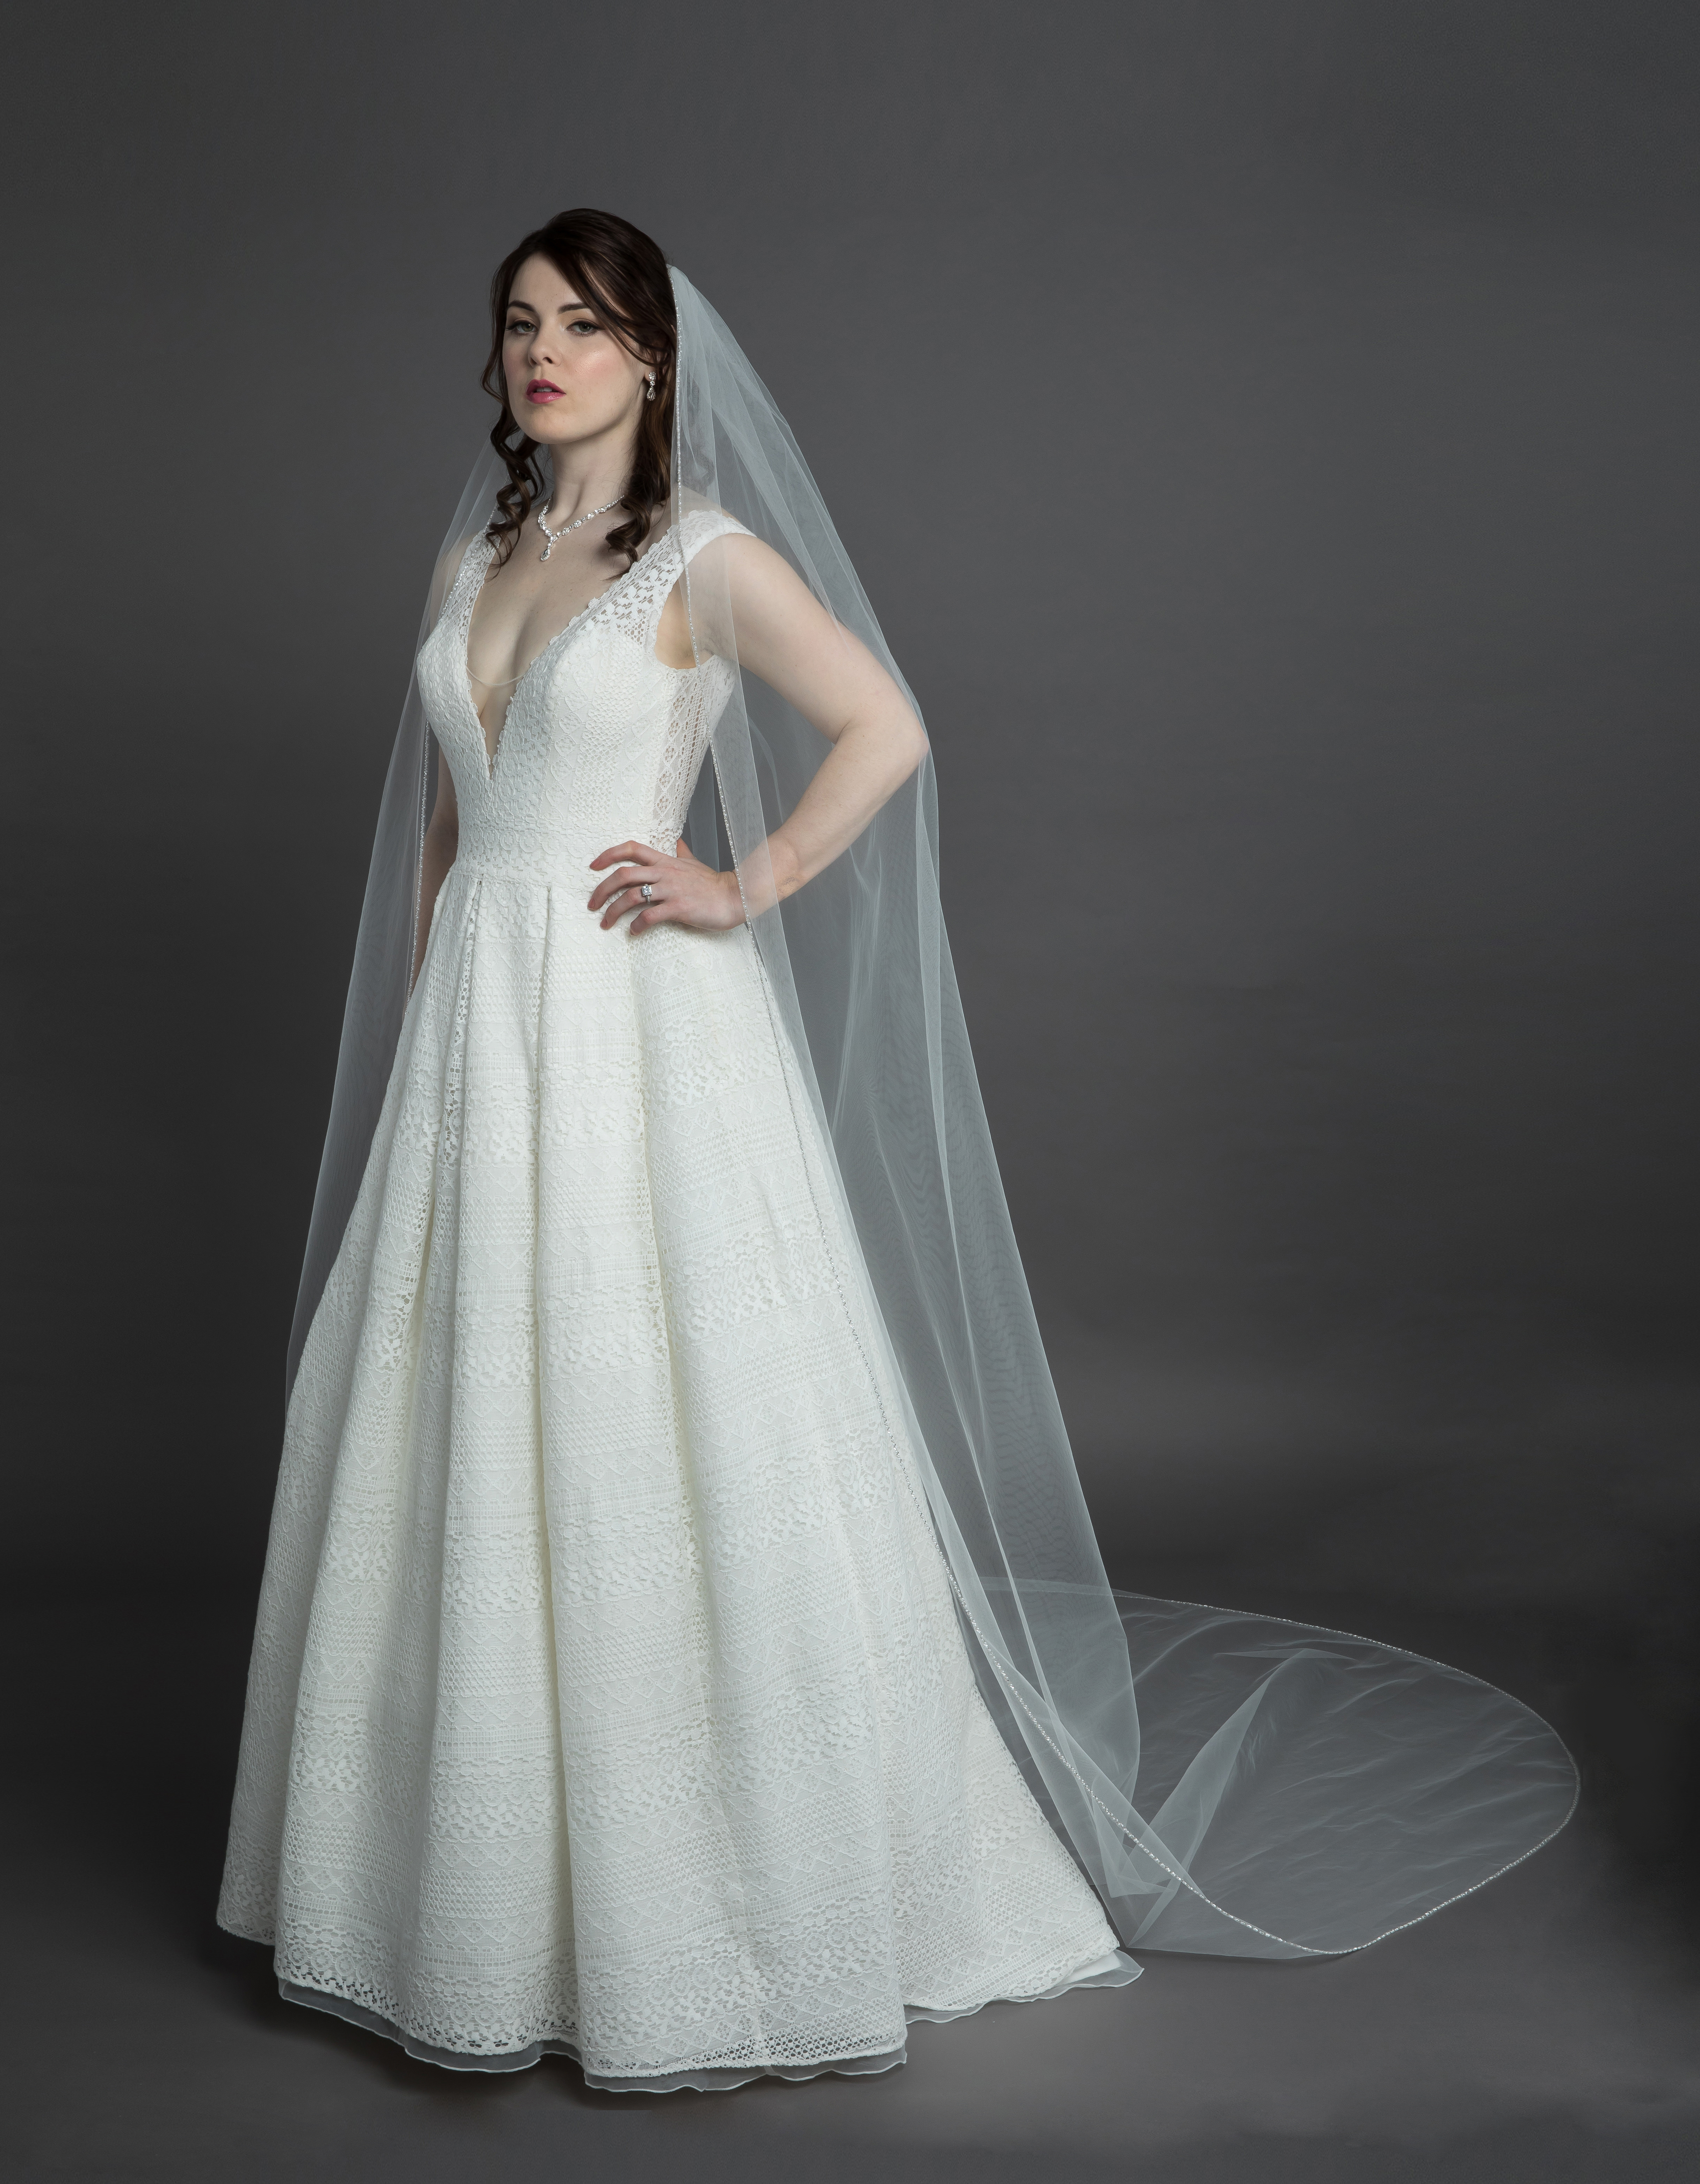 Bridal Classics Marquise Veil Collection MV-2475